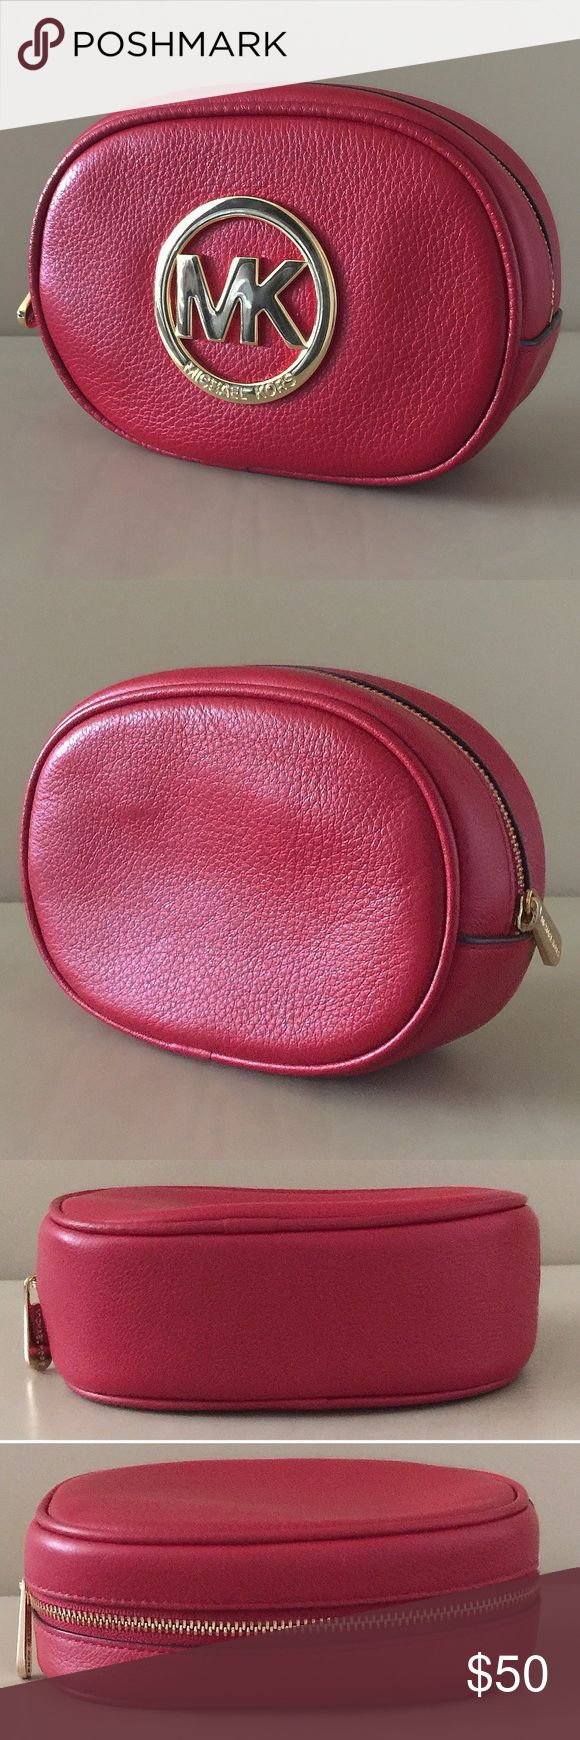 💥TODAY ONLY💥 Michael Kors Fulton Cosmetic Bag - PRICE FIRM -                                                                     Michael Kors Fulton Pebble Leather Cosmetic Travel Bag In Red. Goldtone Hardware. Gently Used. Good Condition. Michael Kors Bags Cosmetic Bags & Cases